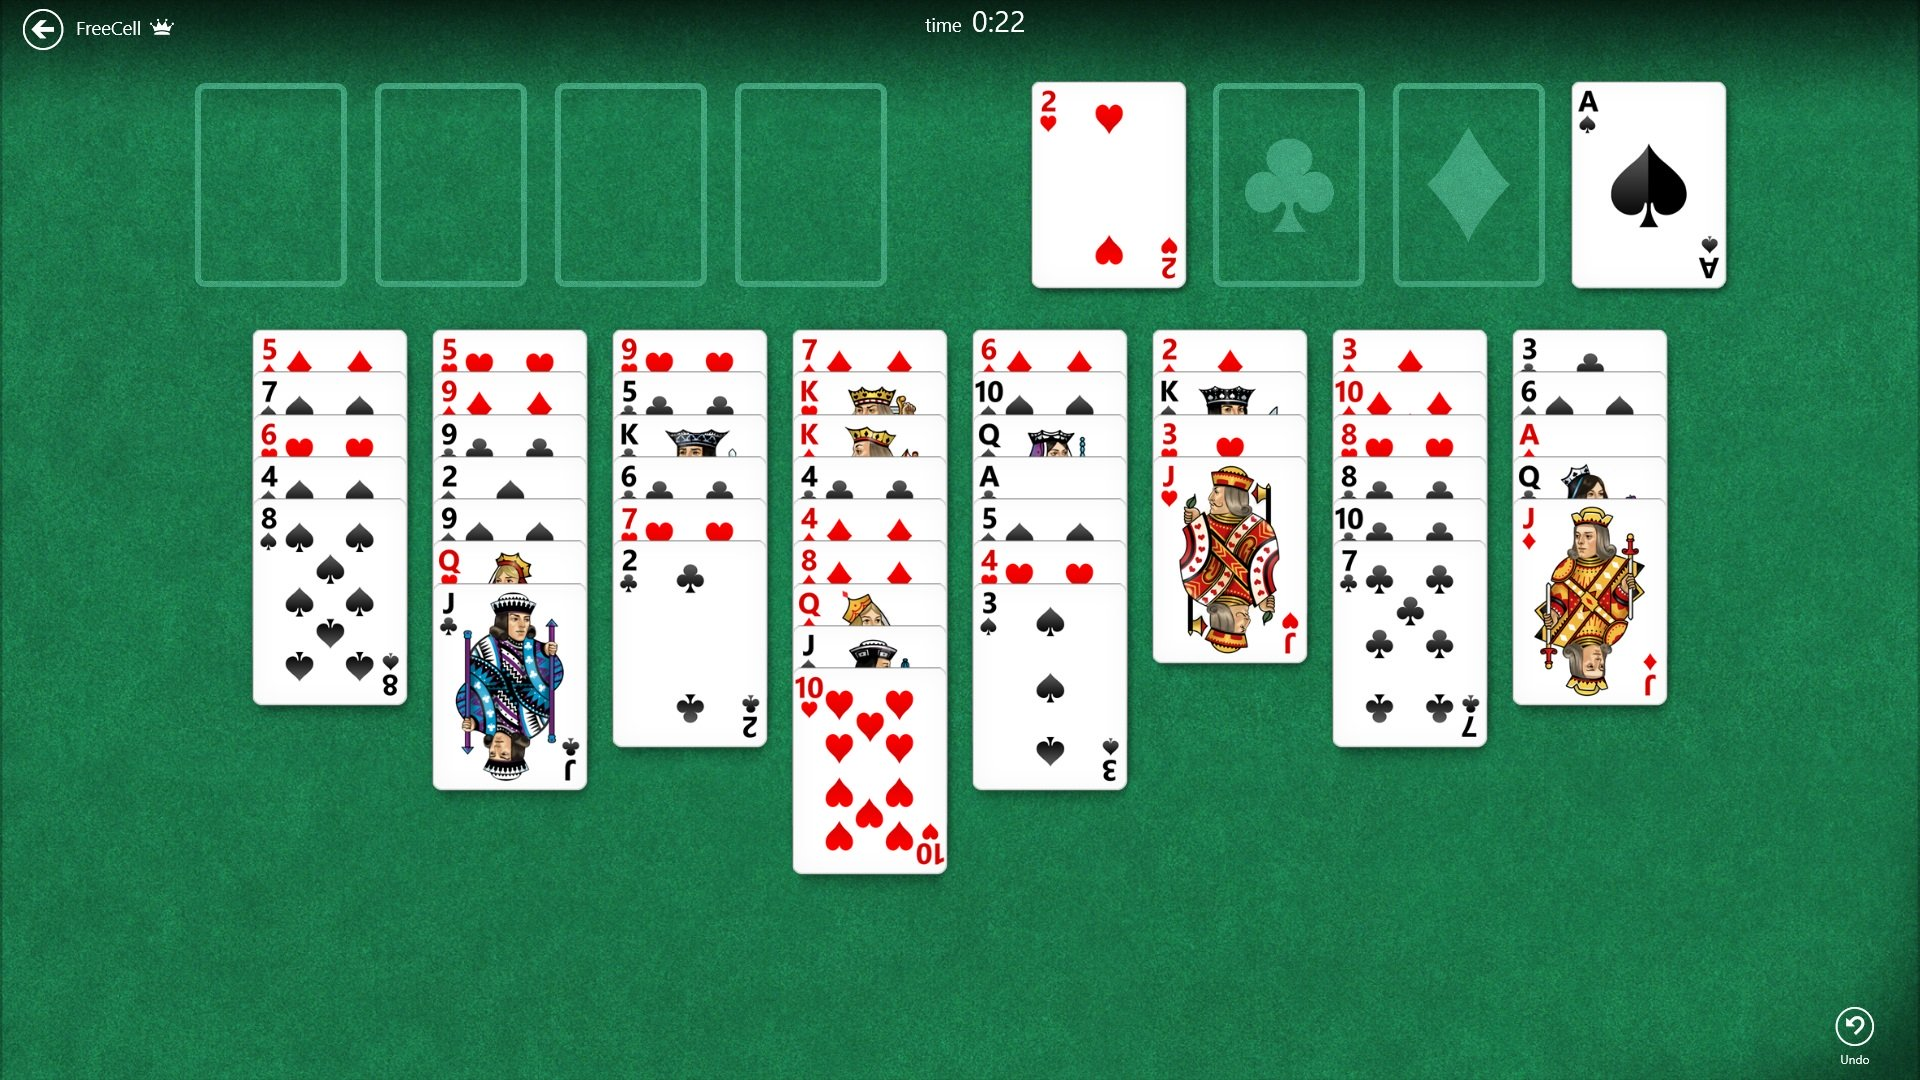 freecell solitaire app